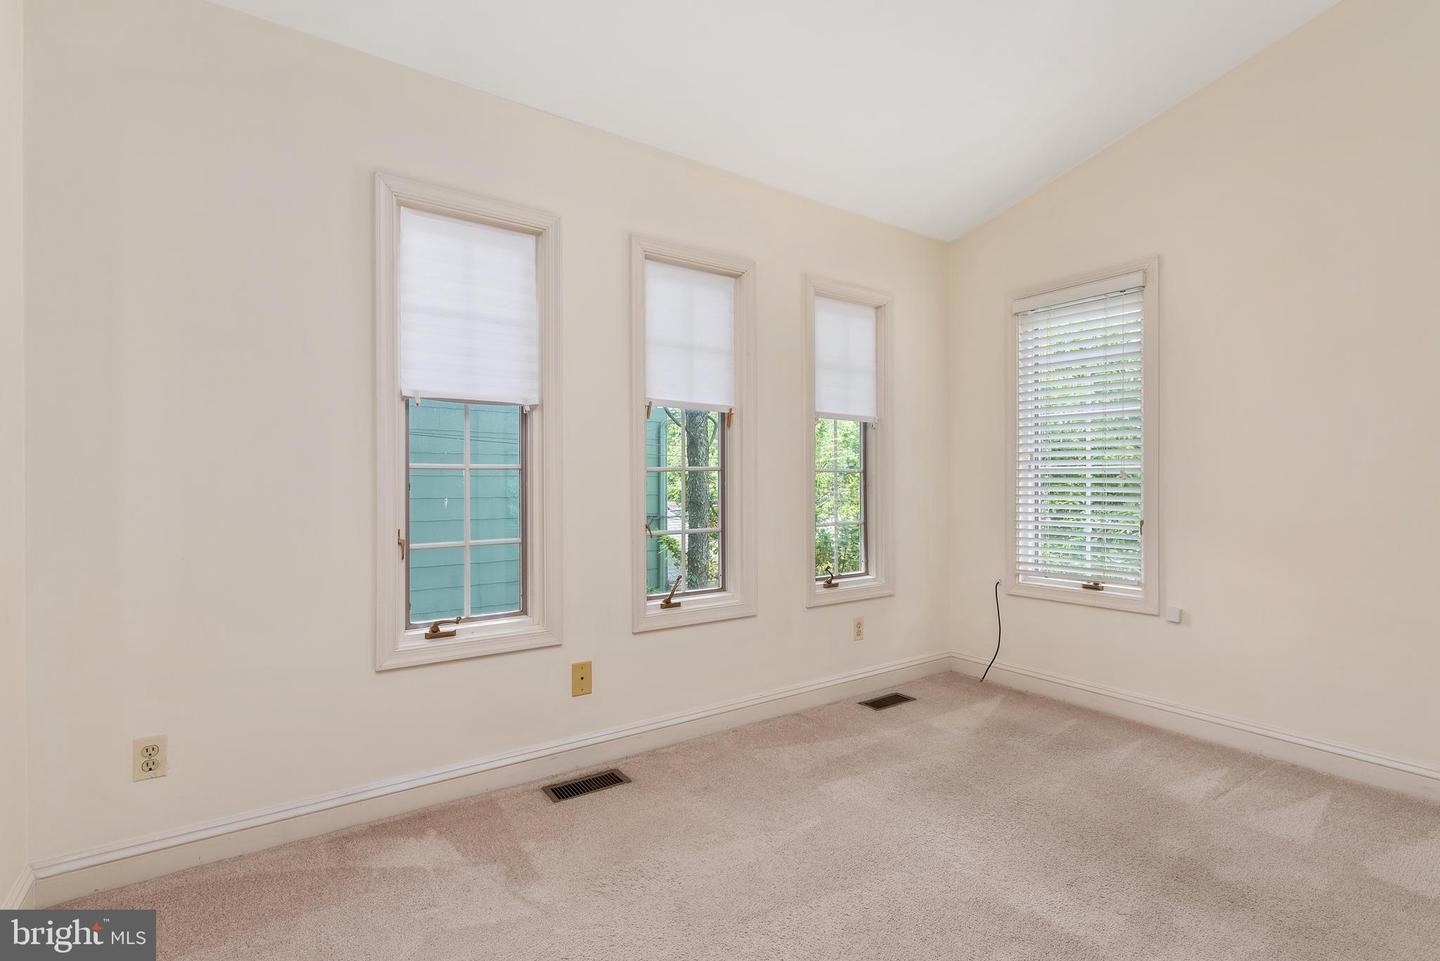 Additional photo for property listing at 42 Shore Walk Rd Riva, Maryland 21140 United States